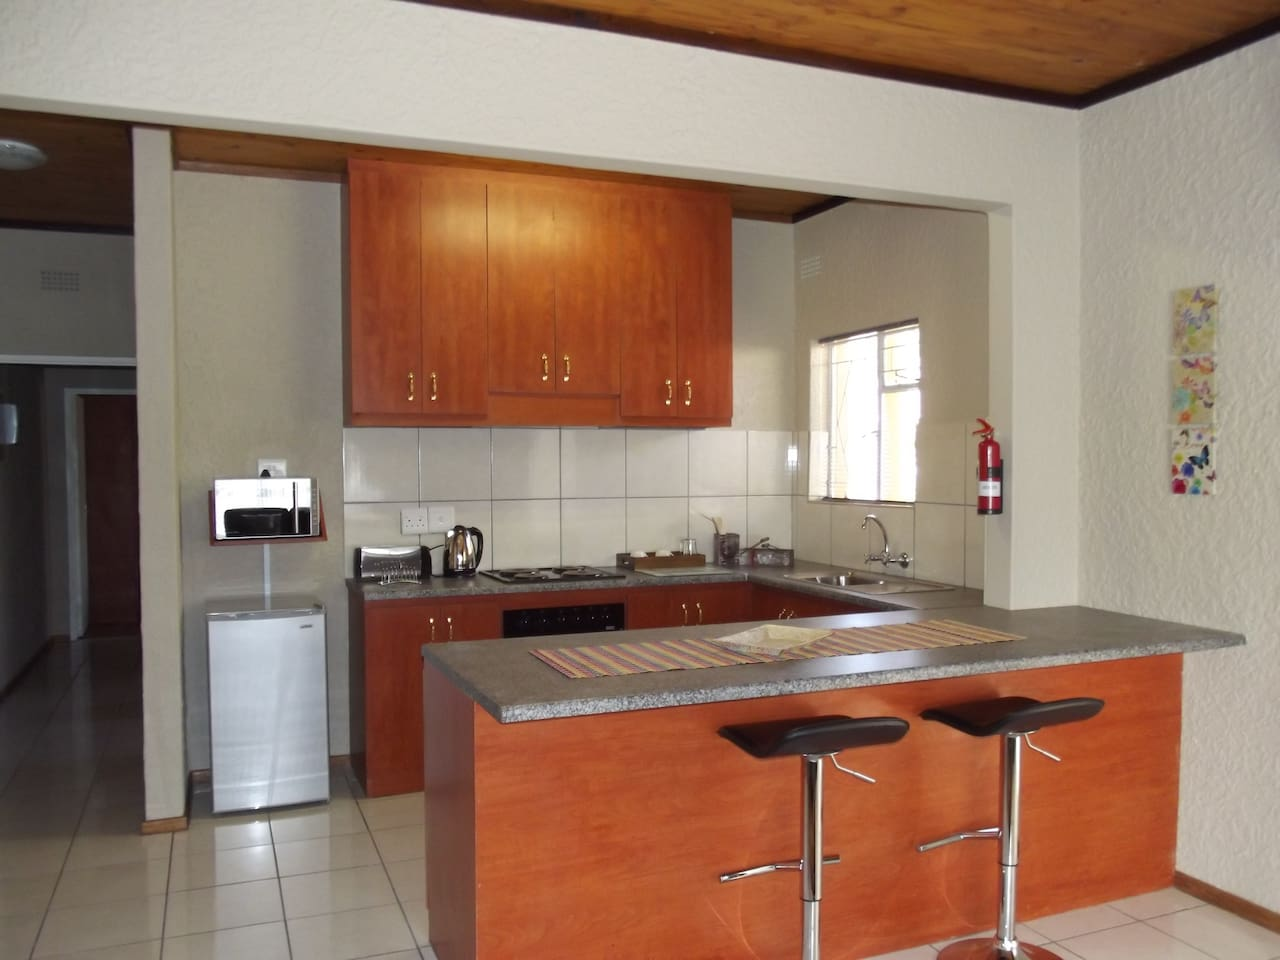 Fully furnished kitchen with washing machine and tumble dryer.